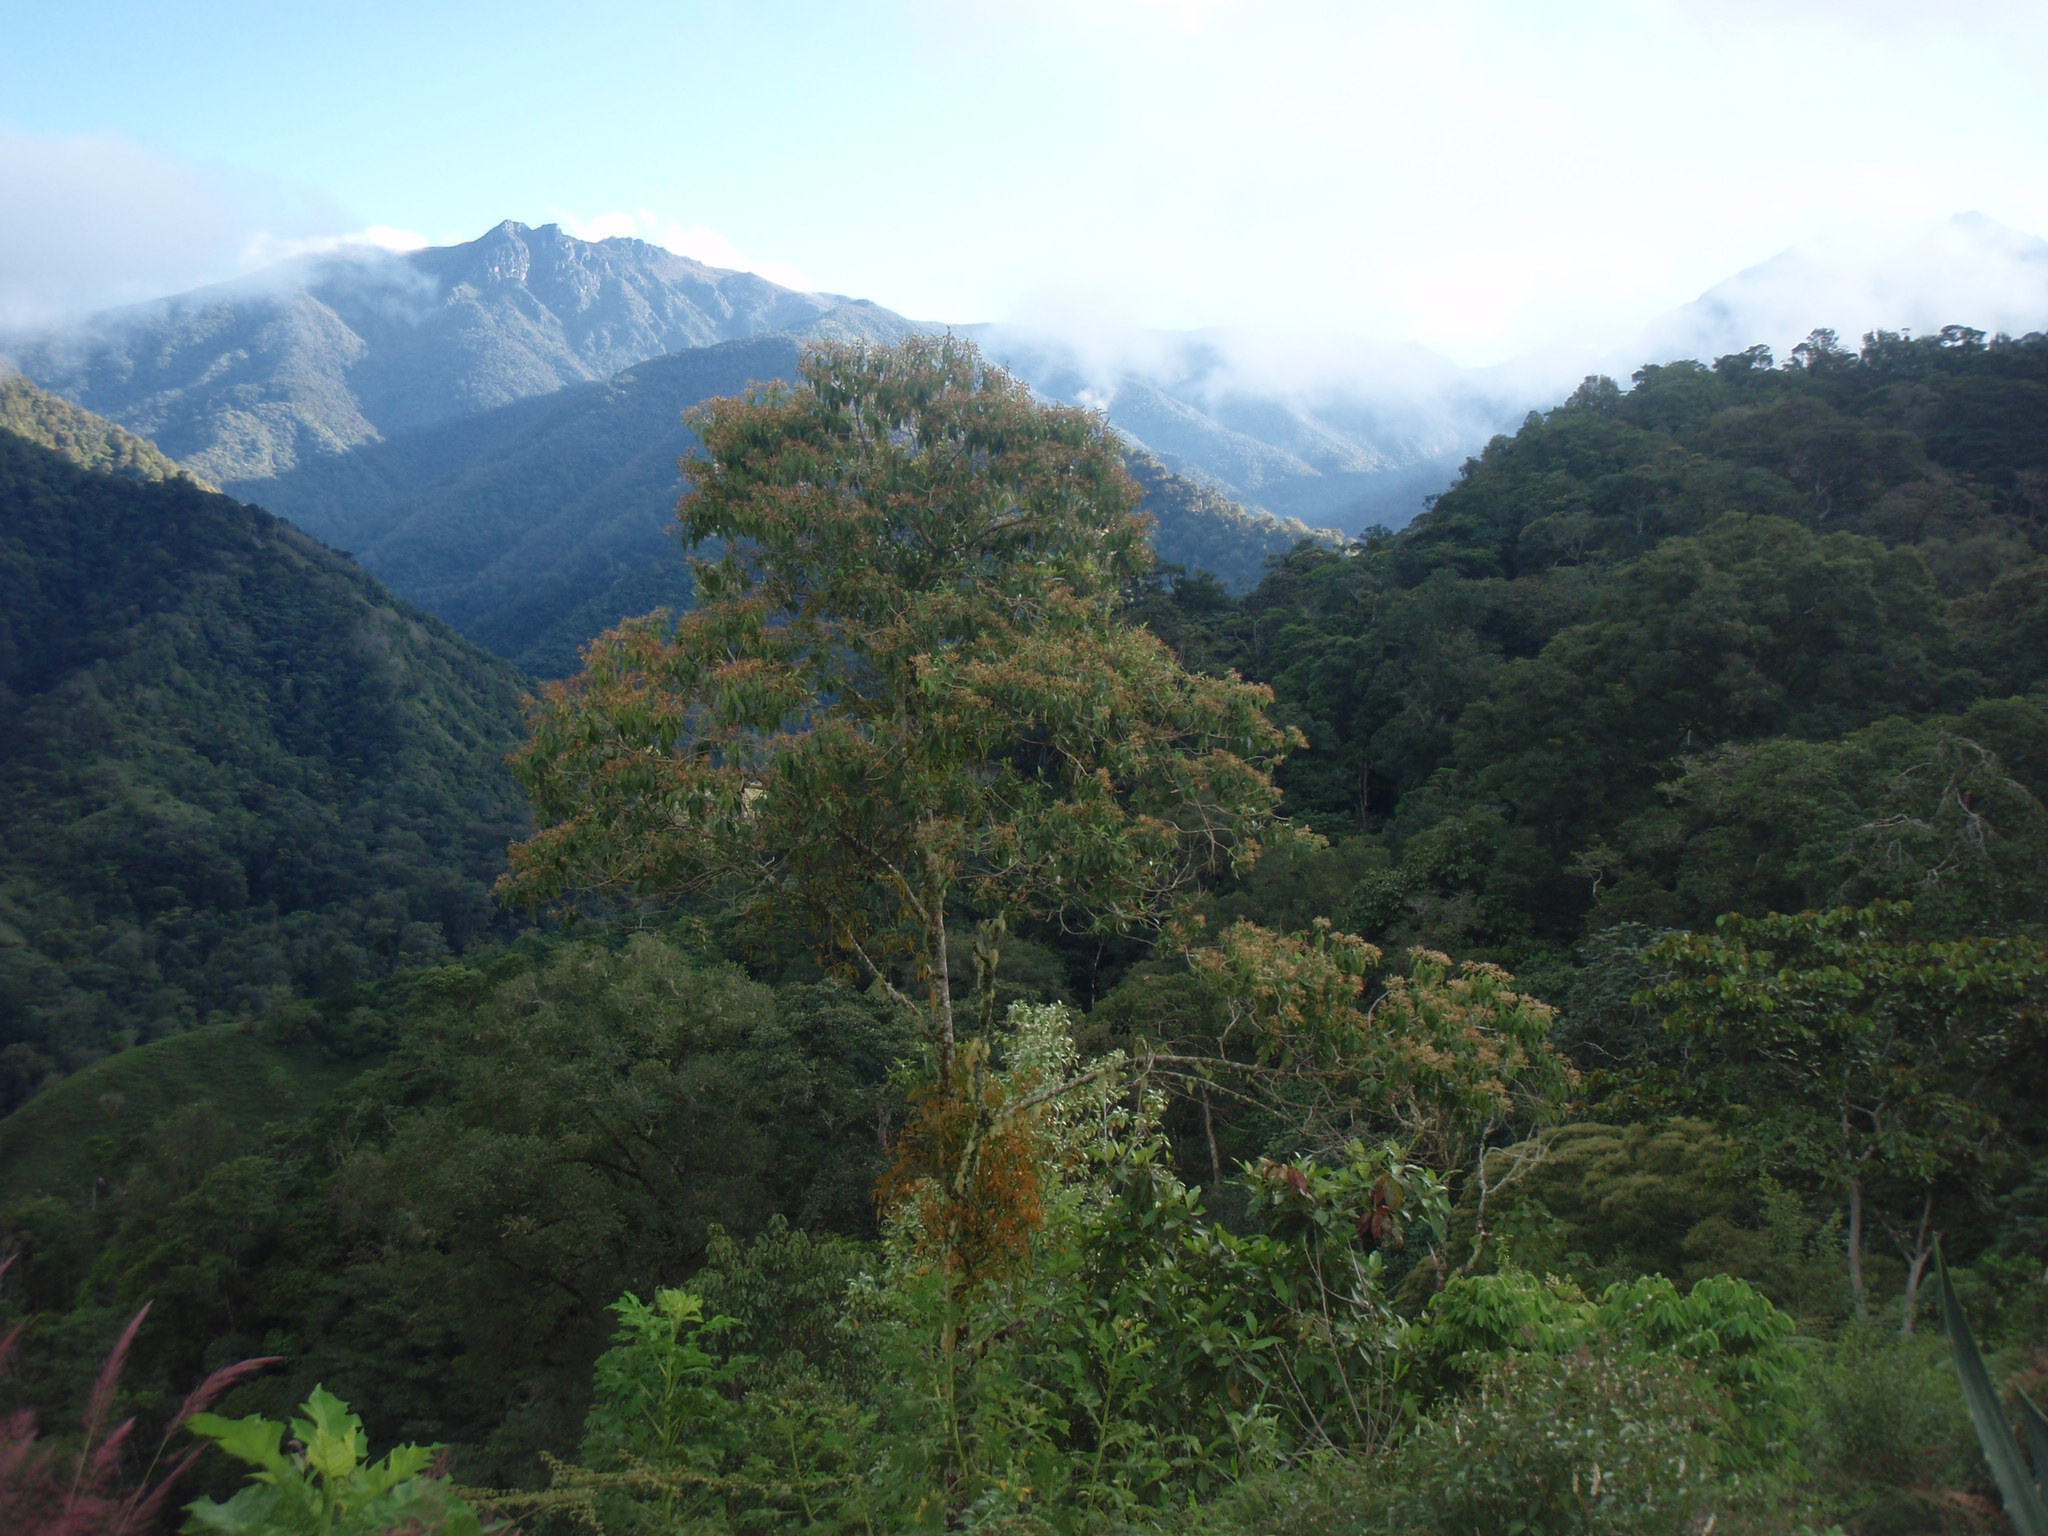 Climbing through the Chirripo cloud forest on Day 1